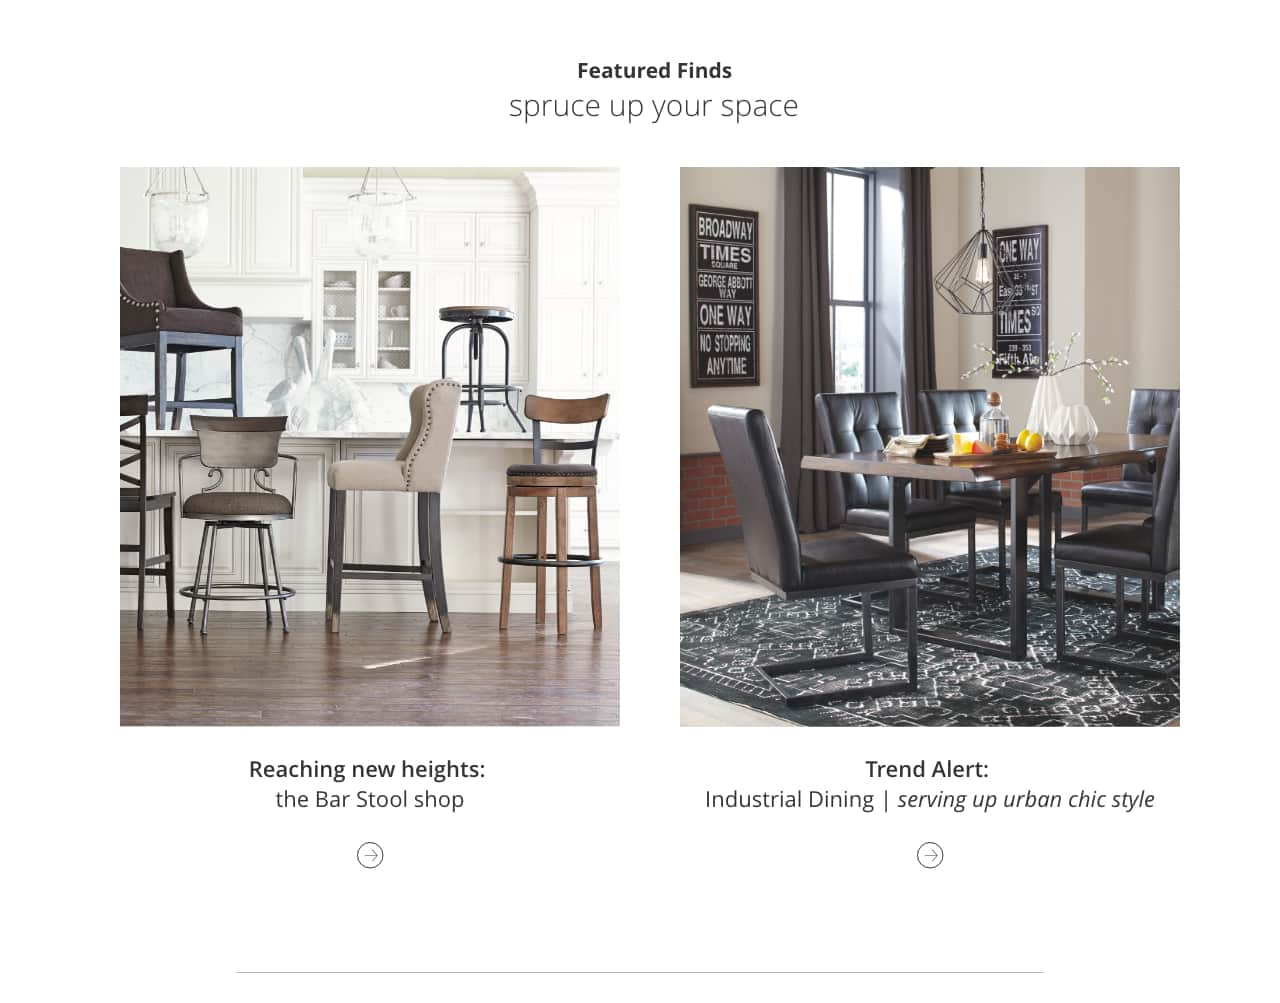 Kitchen dining room furniture ashley furniture homestore bar stool shop industrial dining watchthetrailerfo